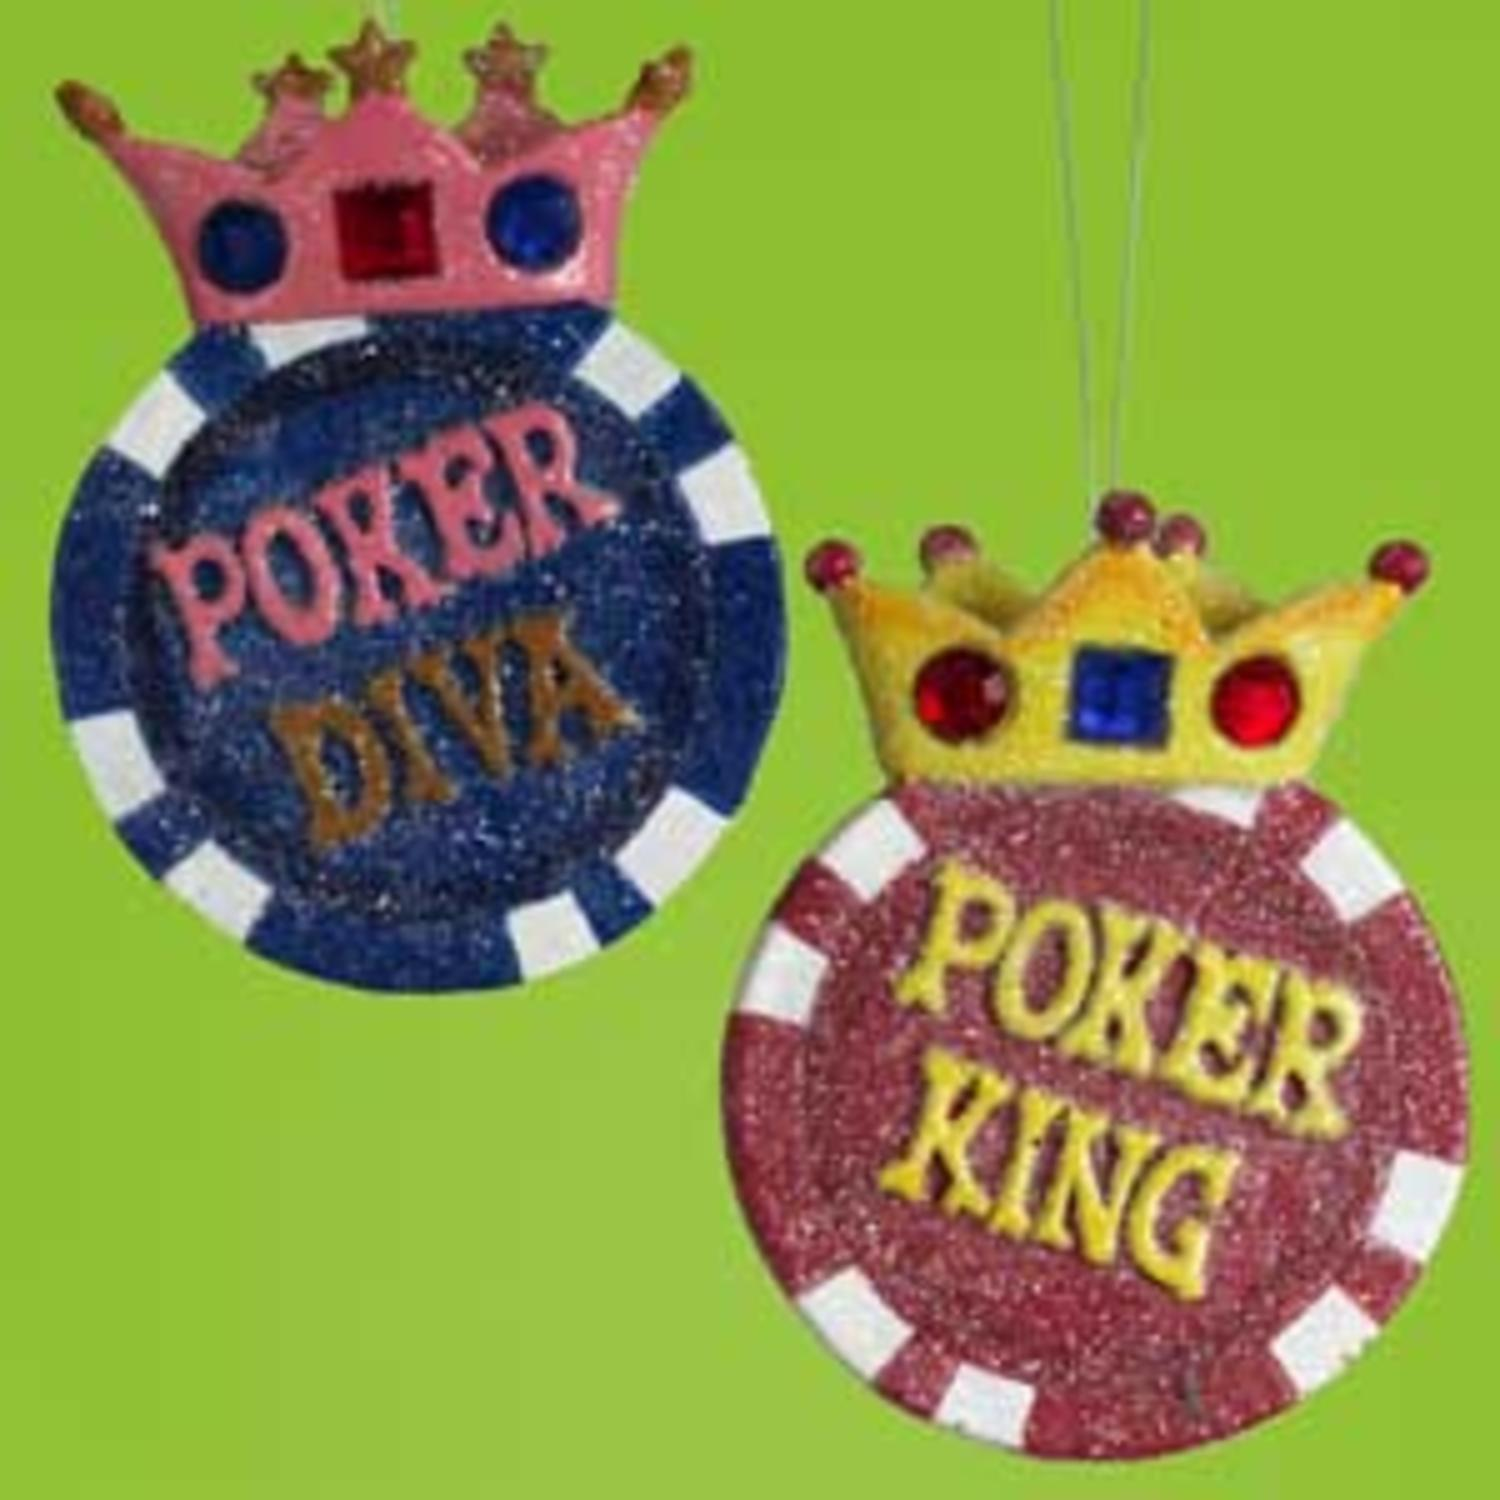 Glittery Poker King With Gem Crown Christmas Ornament